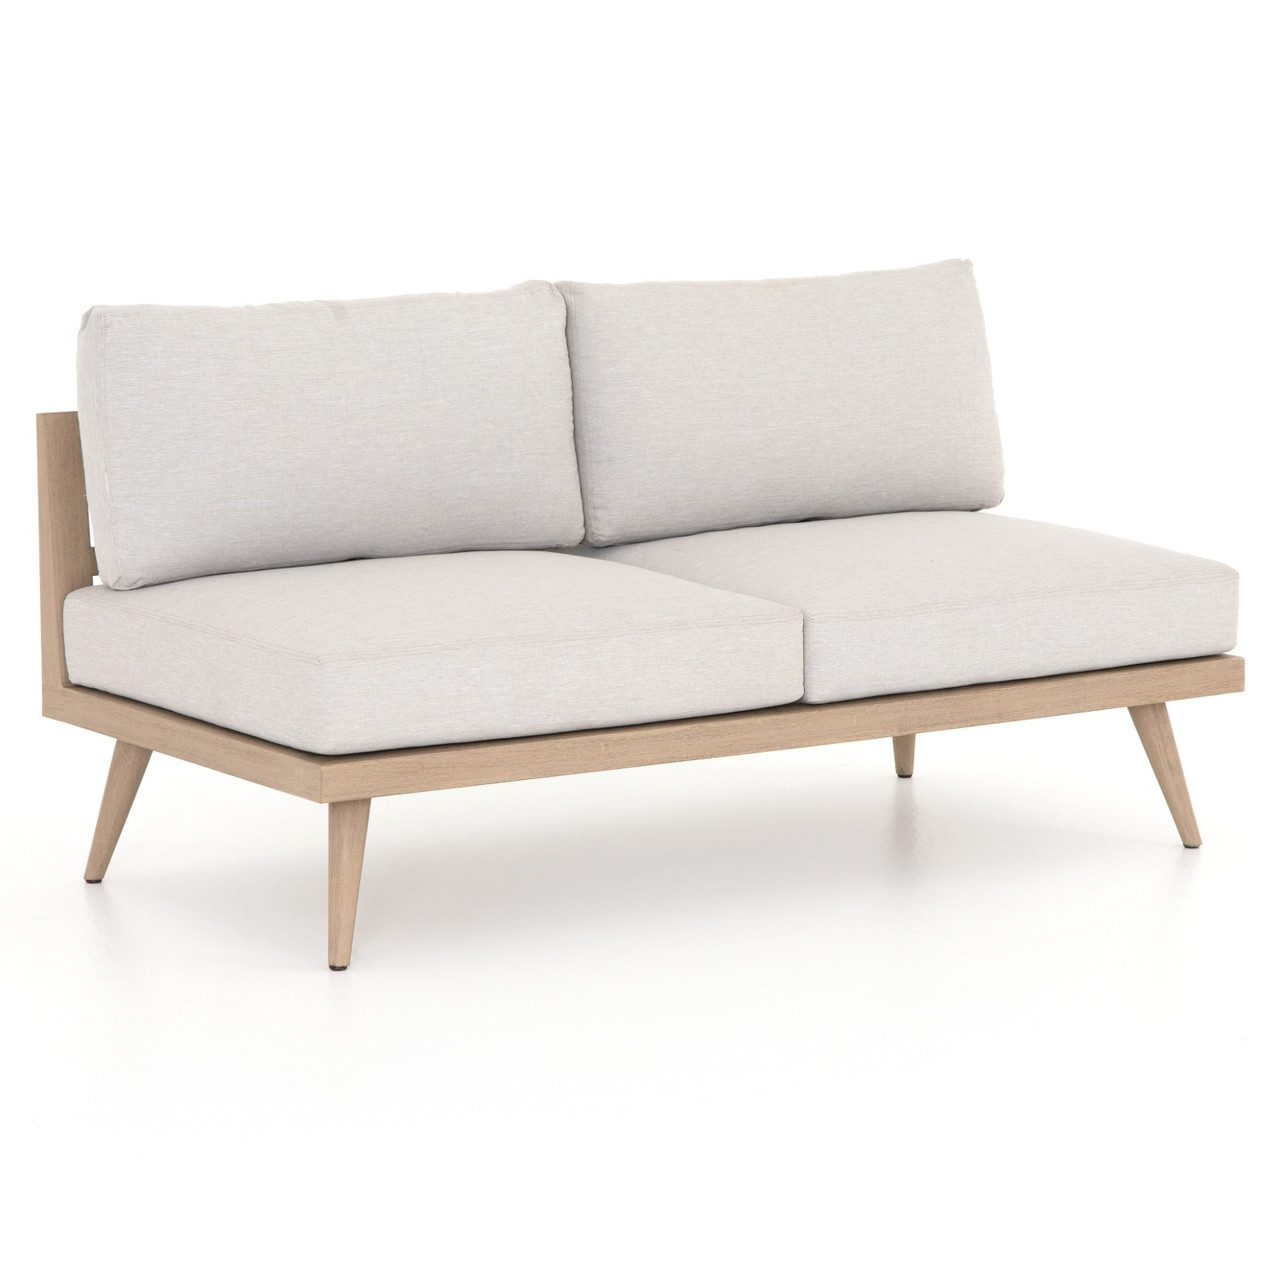 Tilly Modern Brown Teak 2-Seater Armless Outdoor Sofa 60\